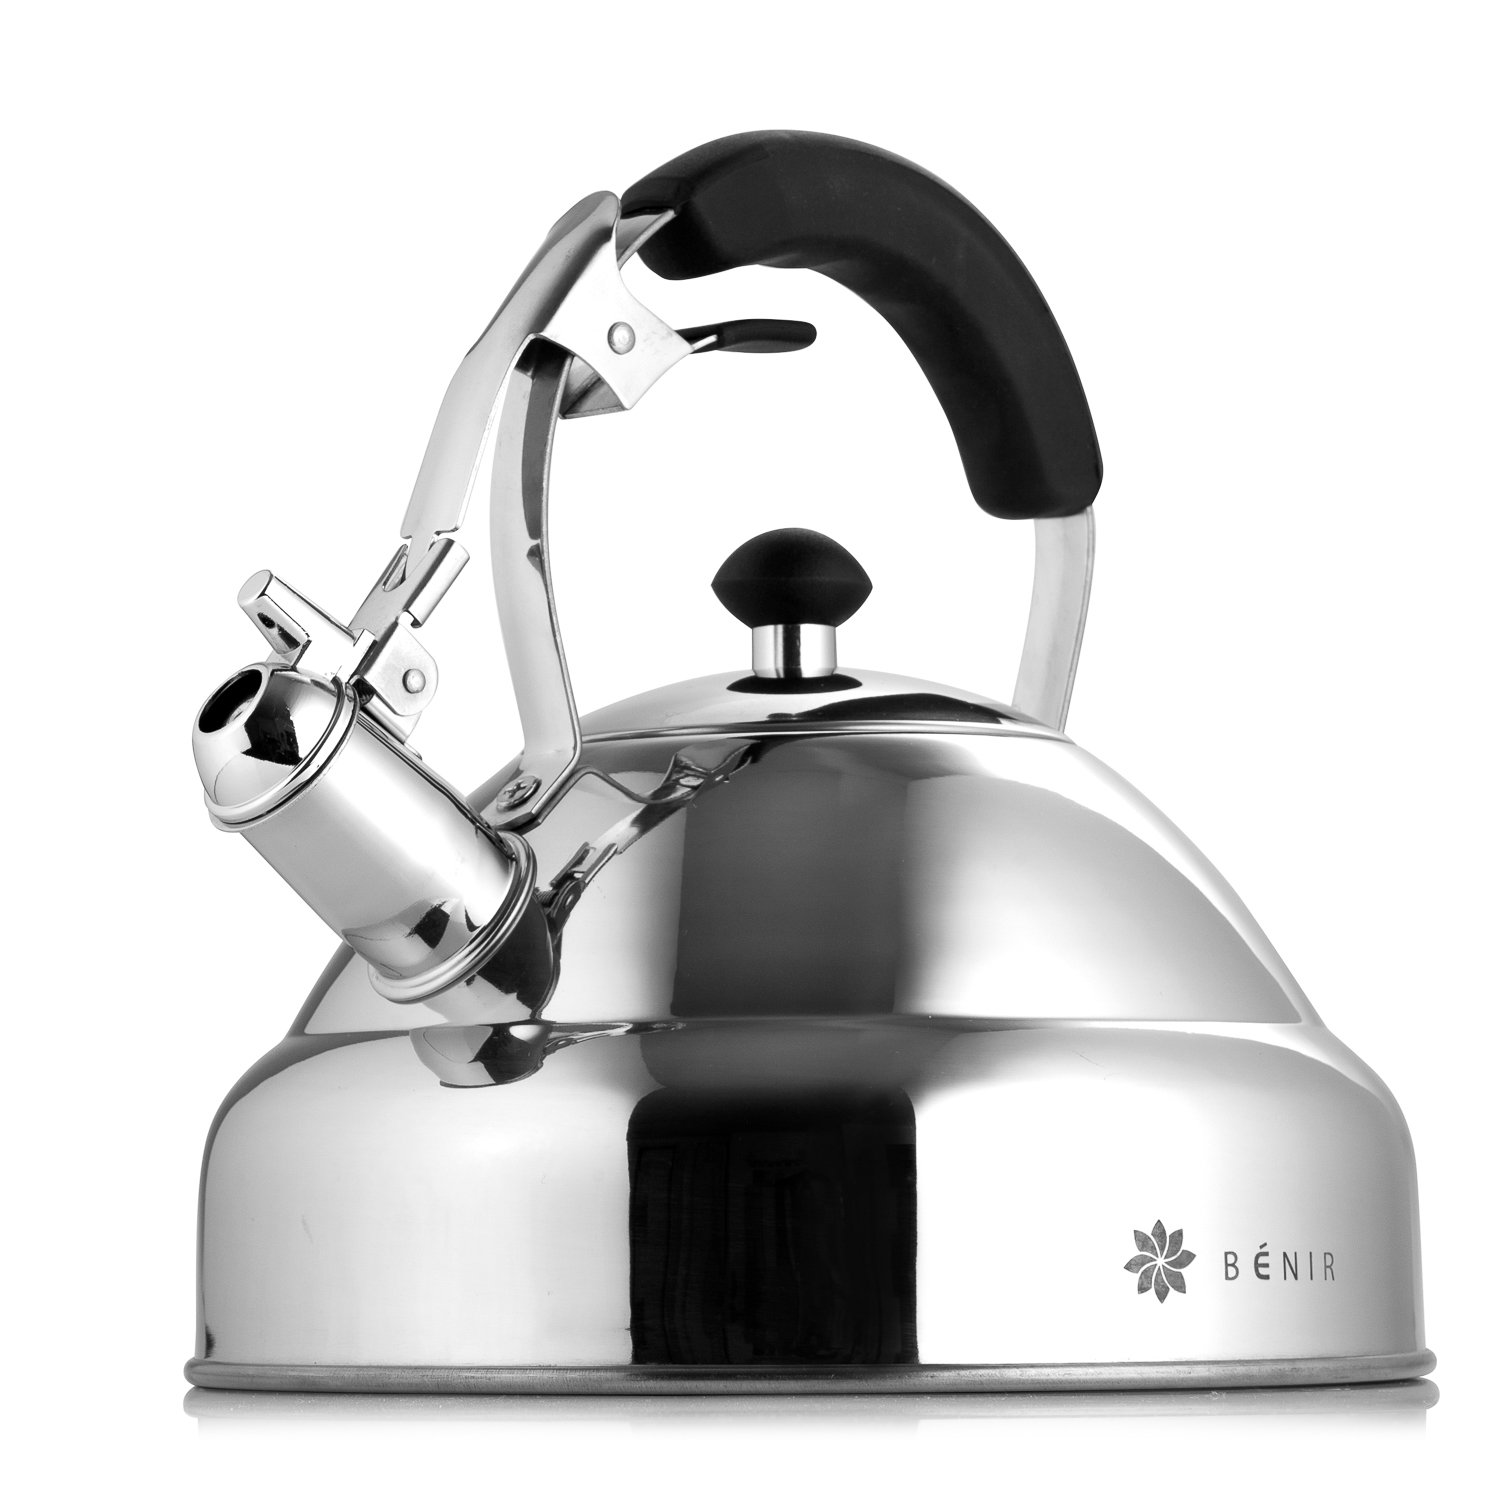 Select Gorgeous Tea Kettle - Whistling I Fastest Boiling Mirror Finish Surgical Stainless Steel Teapot - 11 cup by Benir Kitchen